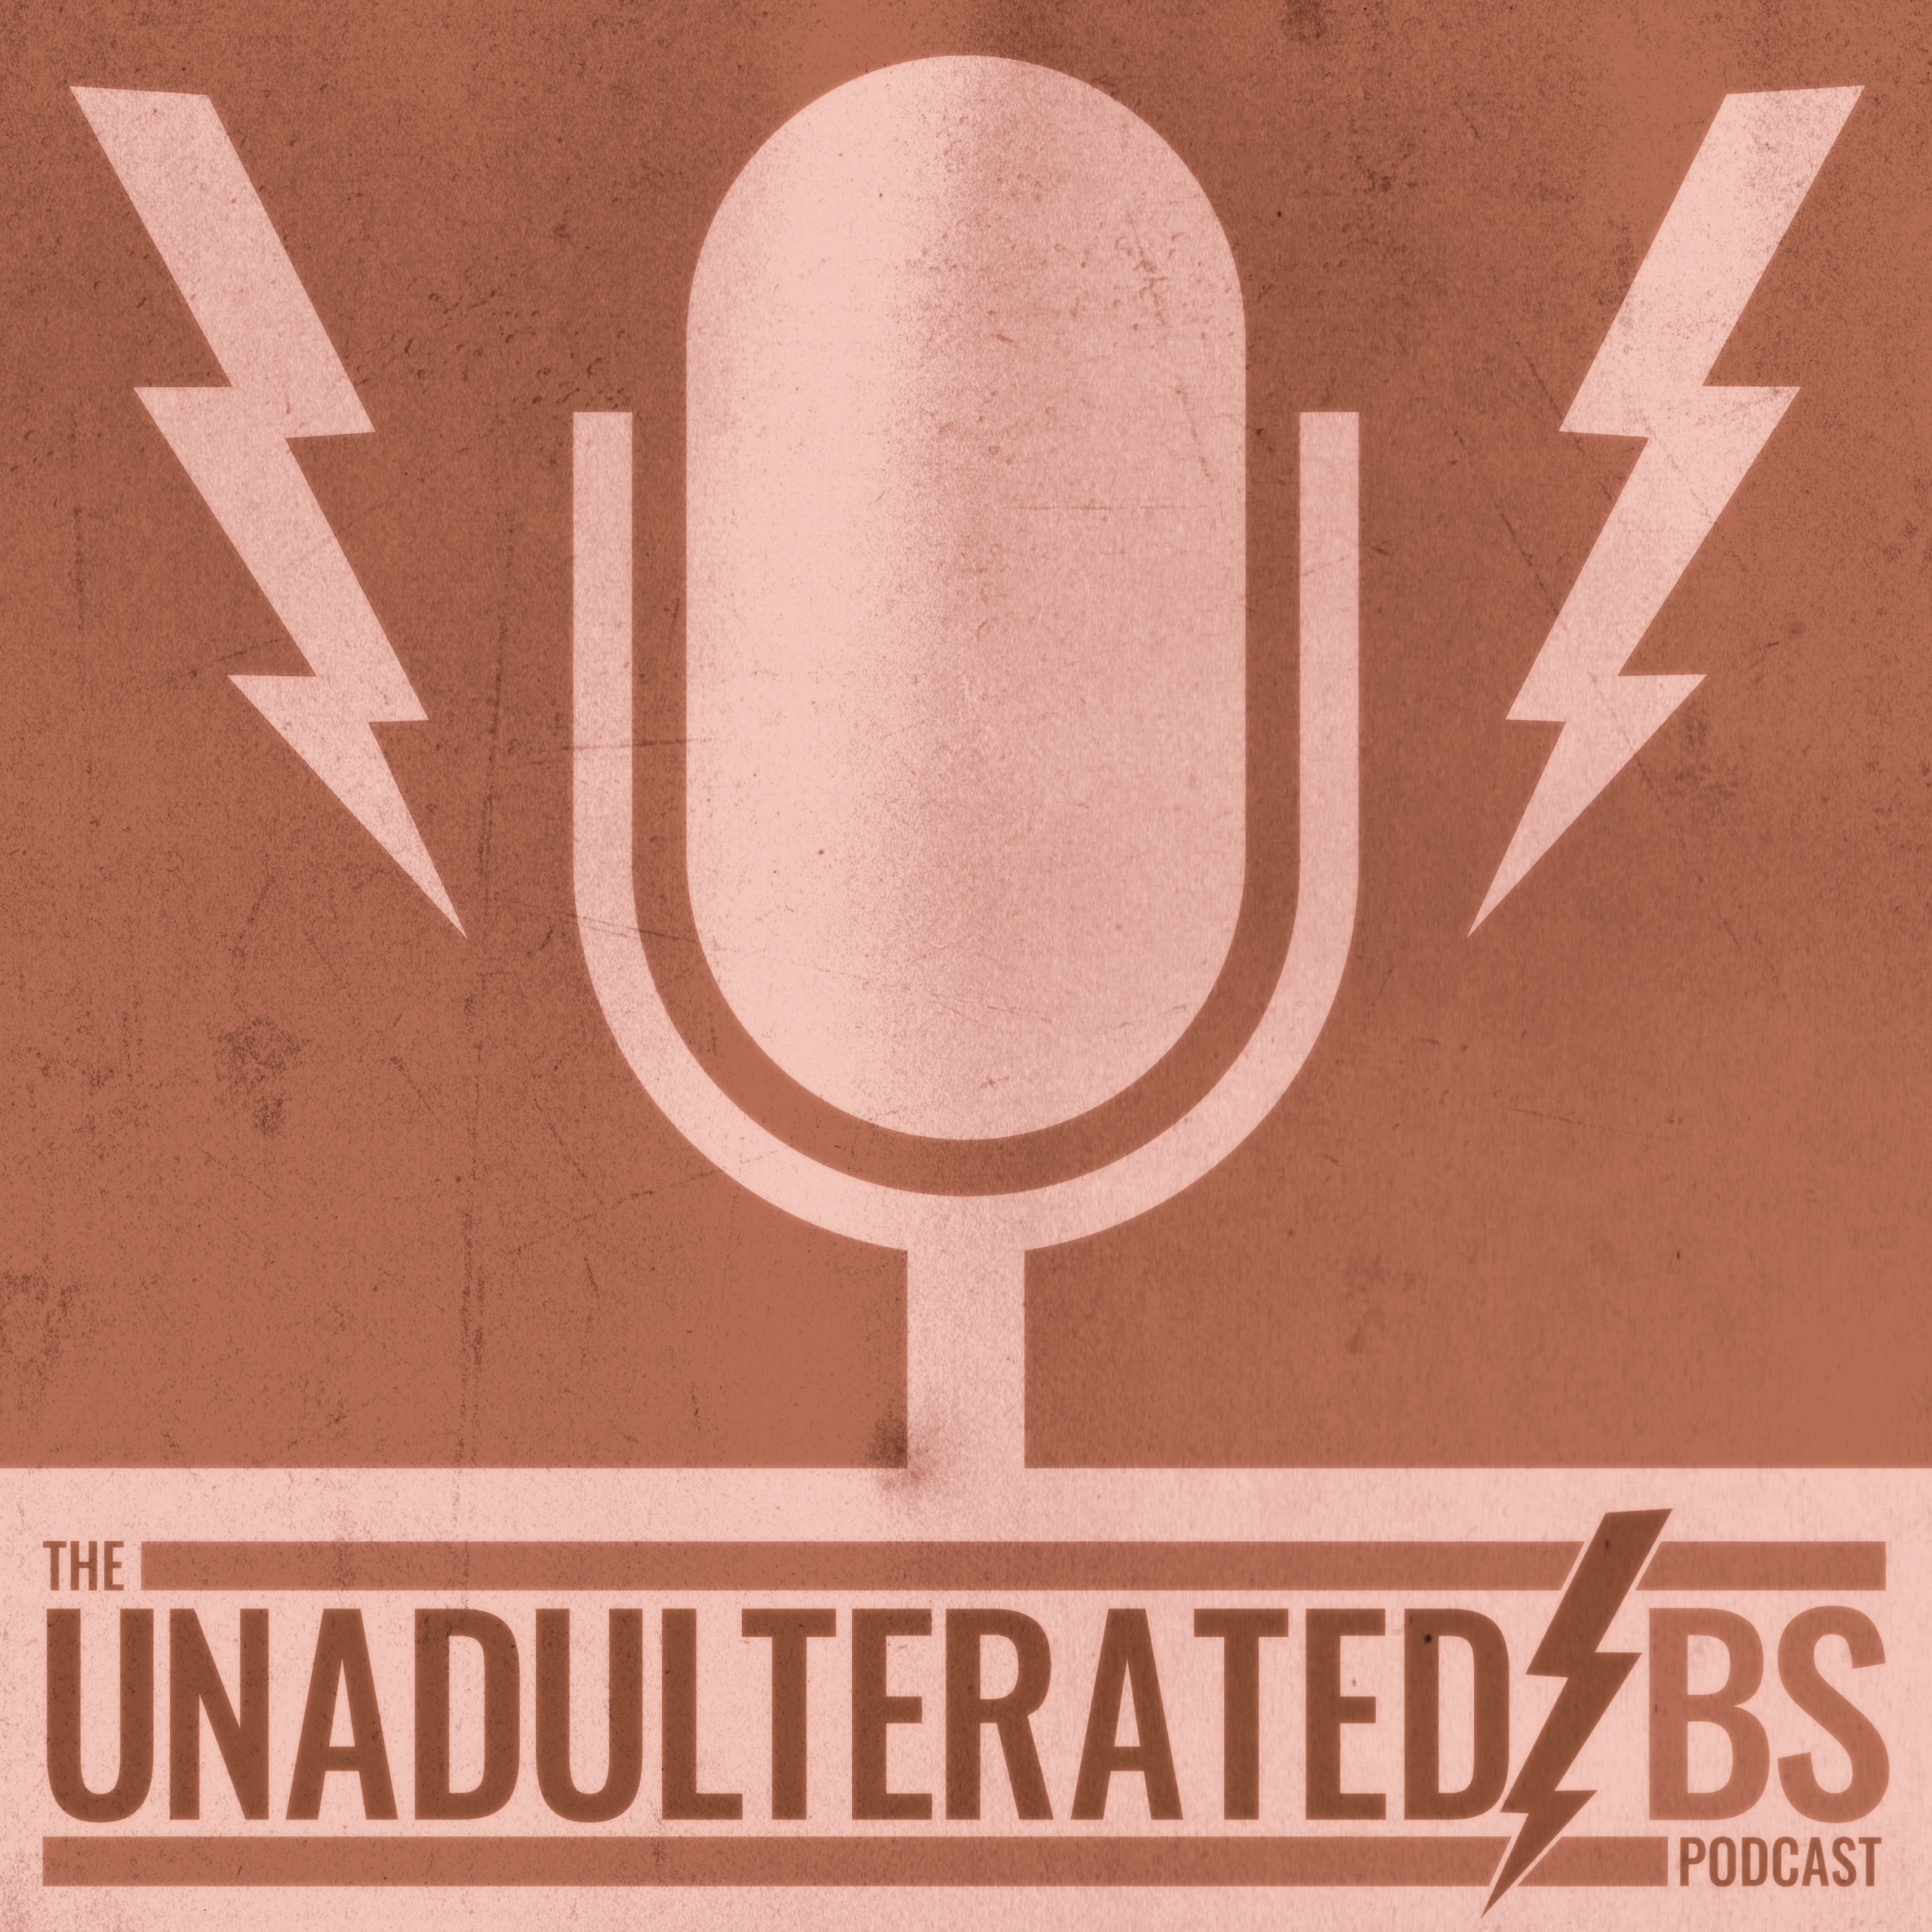 The Unadulterated BS Podcast - Archives